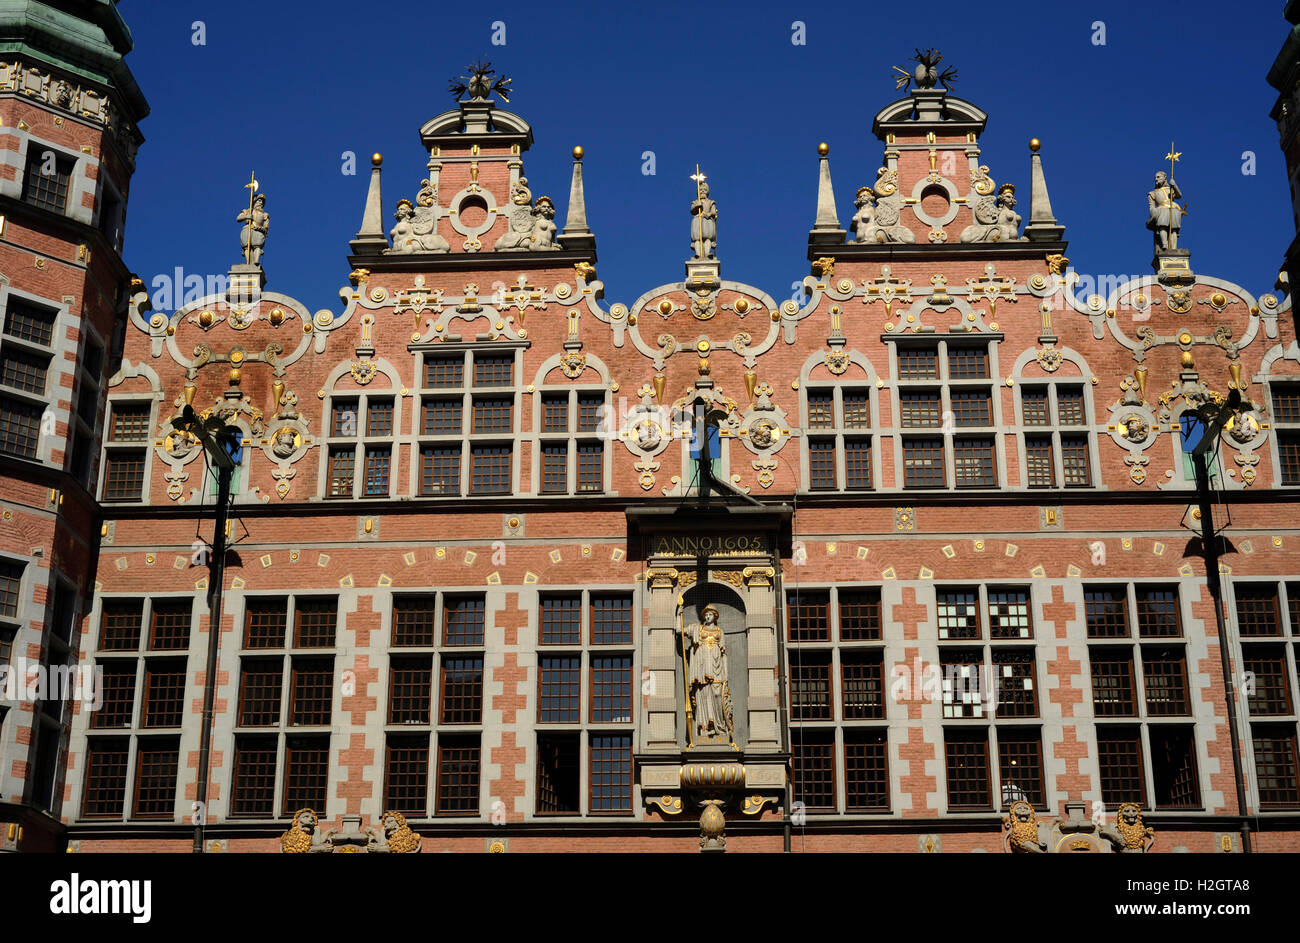 Poland. Gdansk. Great Arsenal. 17th century. Mannerist. Built by Anthony van Obberger (1543-1611). Facade. Detail. - Stock Image